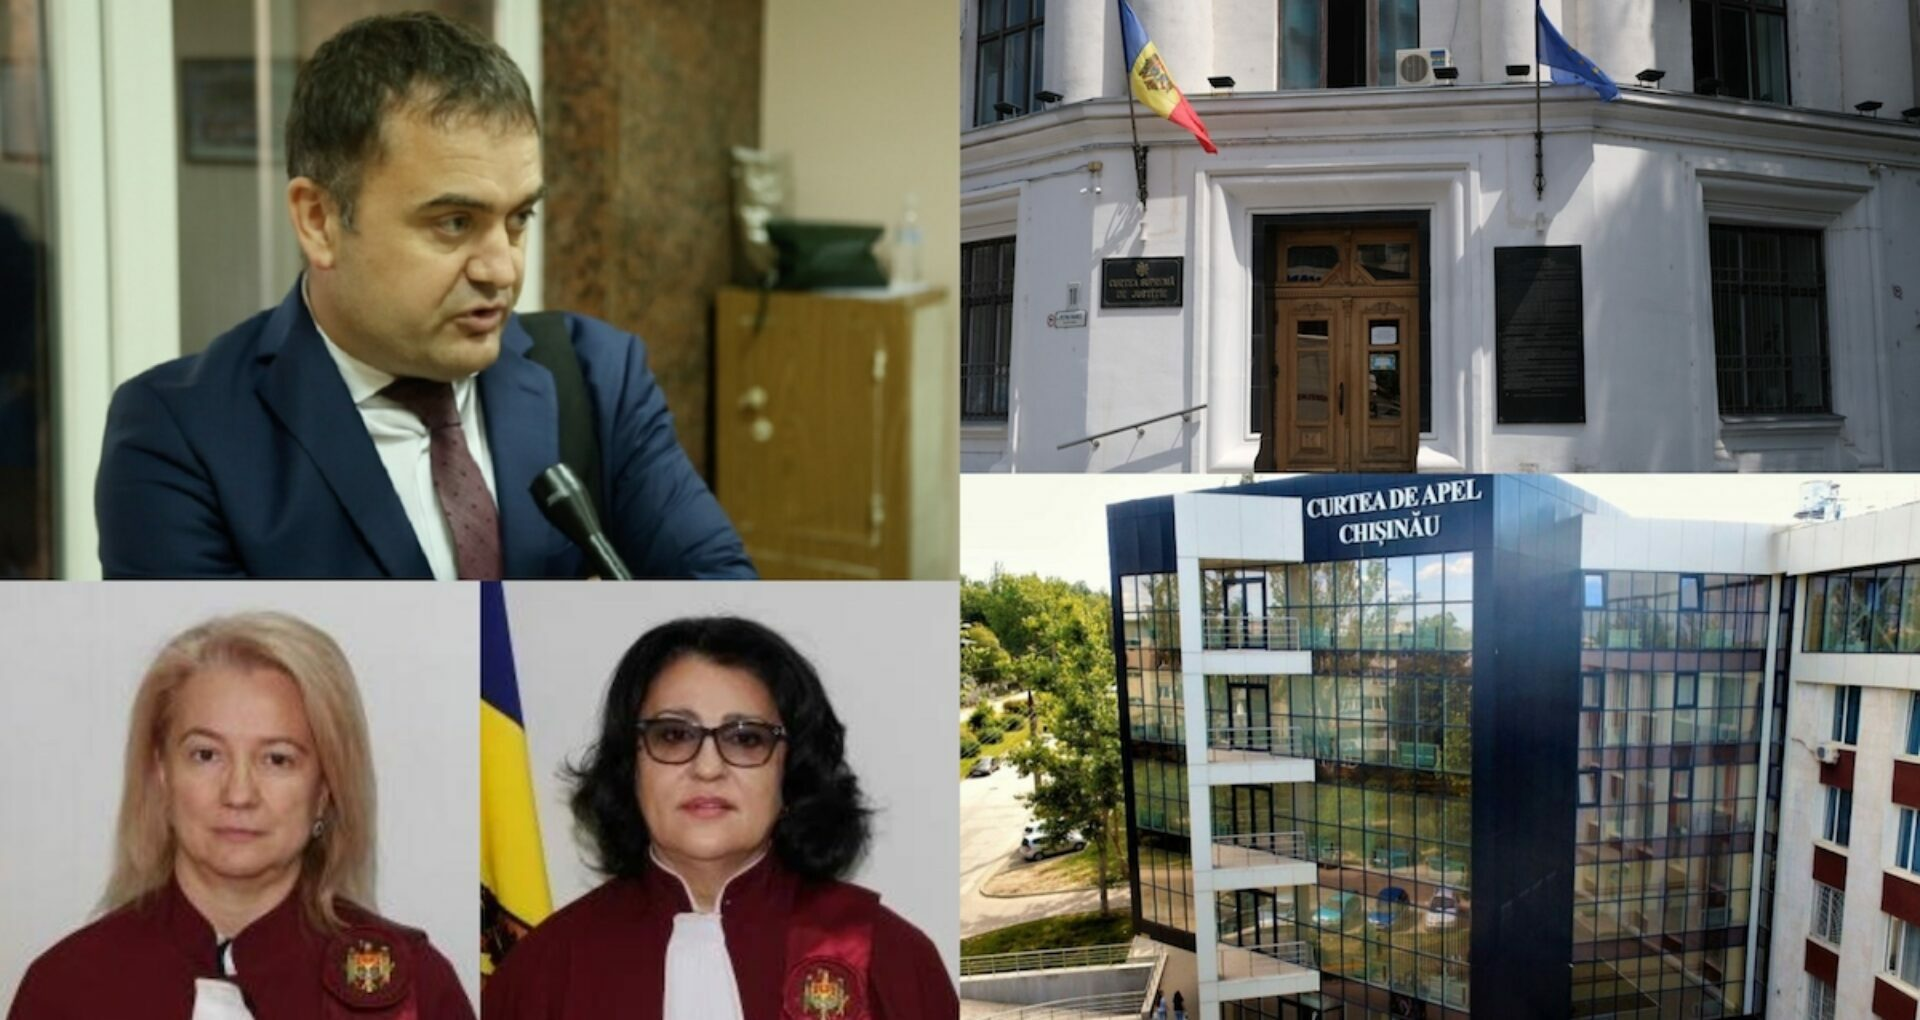 New Judges at the Supreme Court of Justice and the Chișinău Court of Appeal